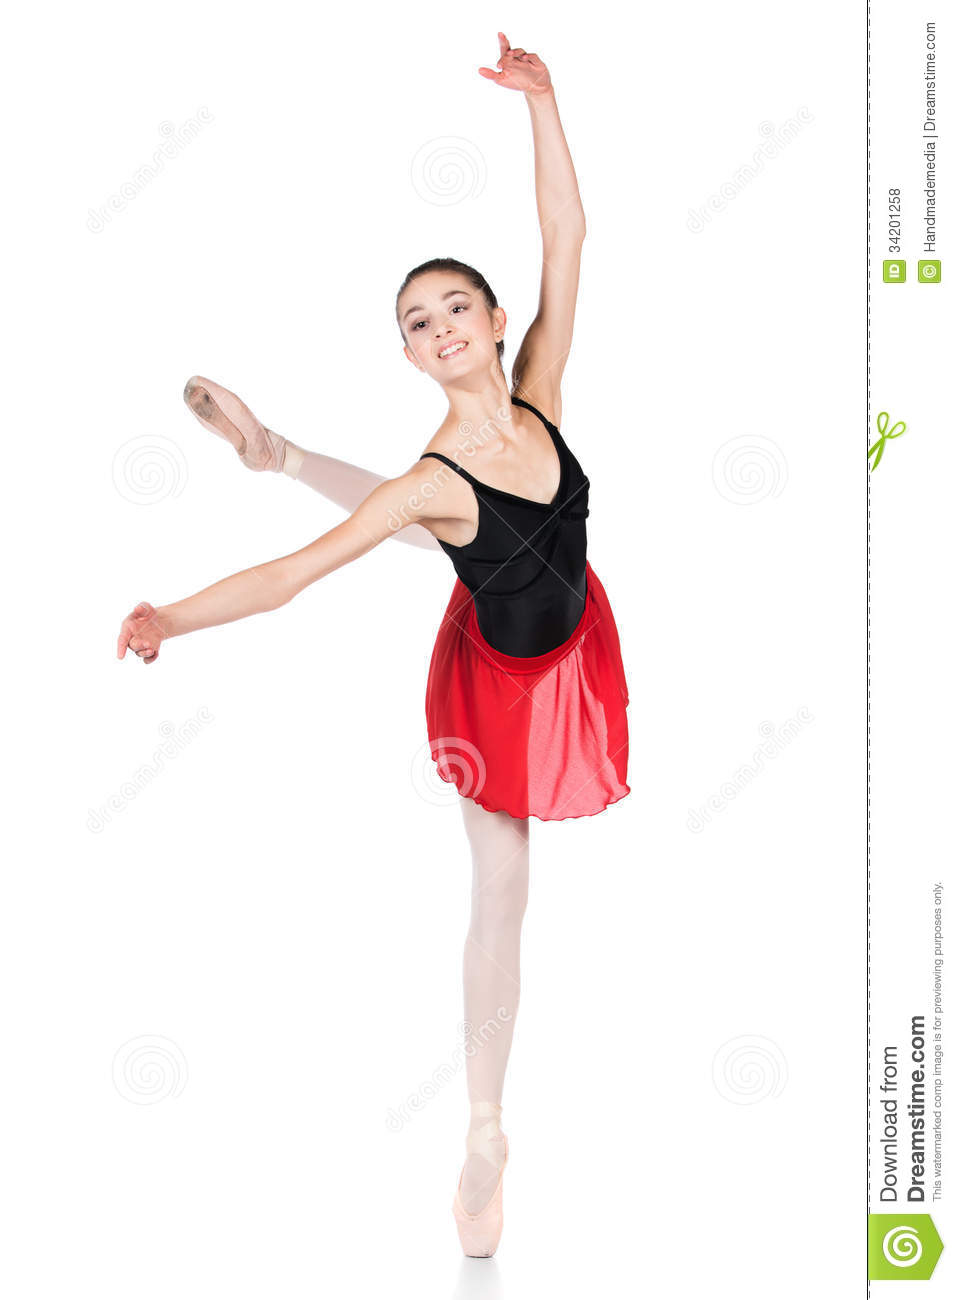 Pointe Shoes And a Red